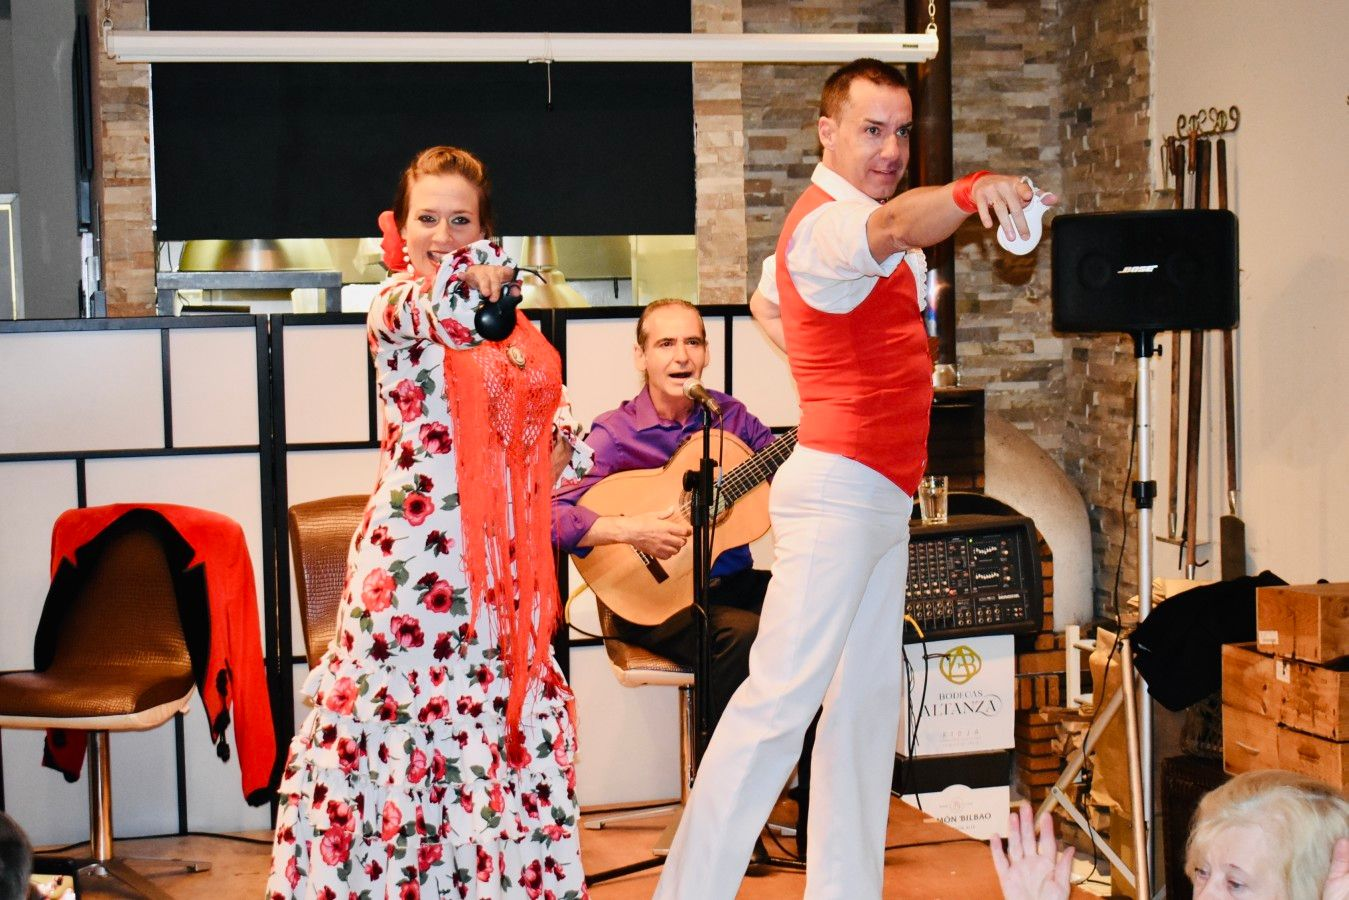 Flamenco Nights offered one Saturday a month